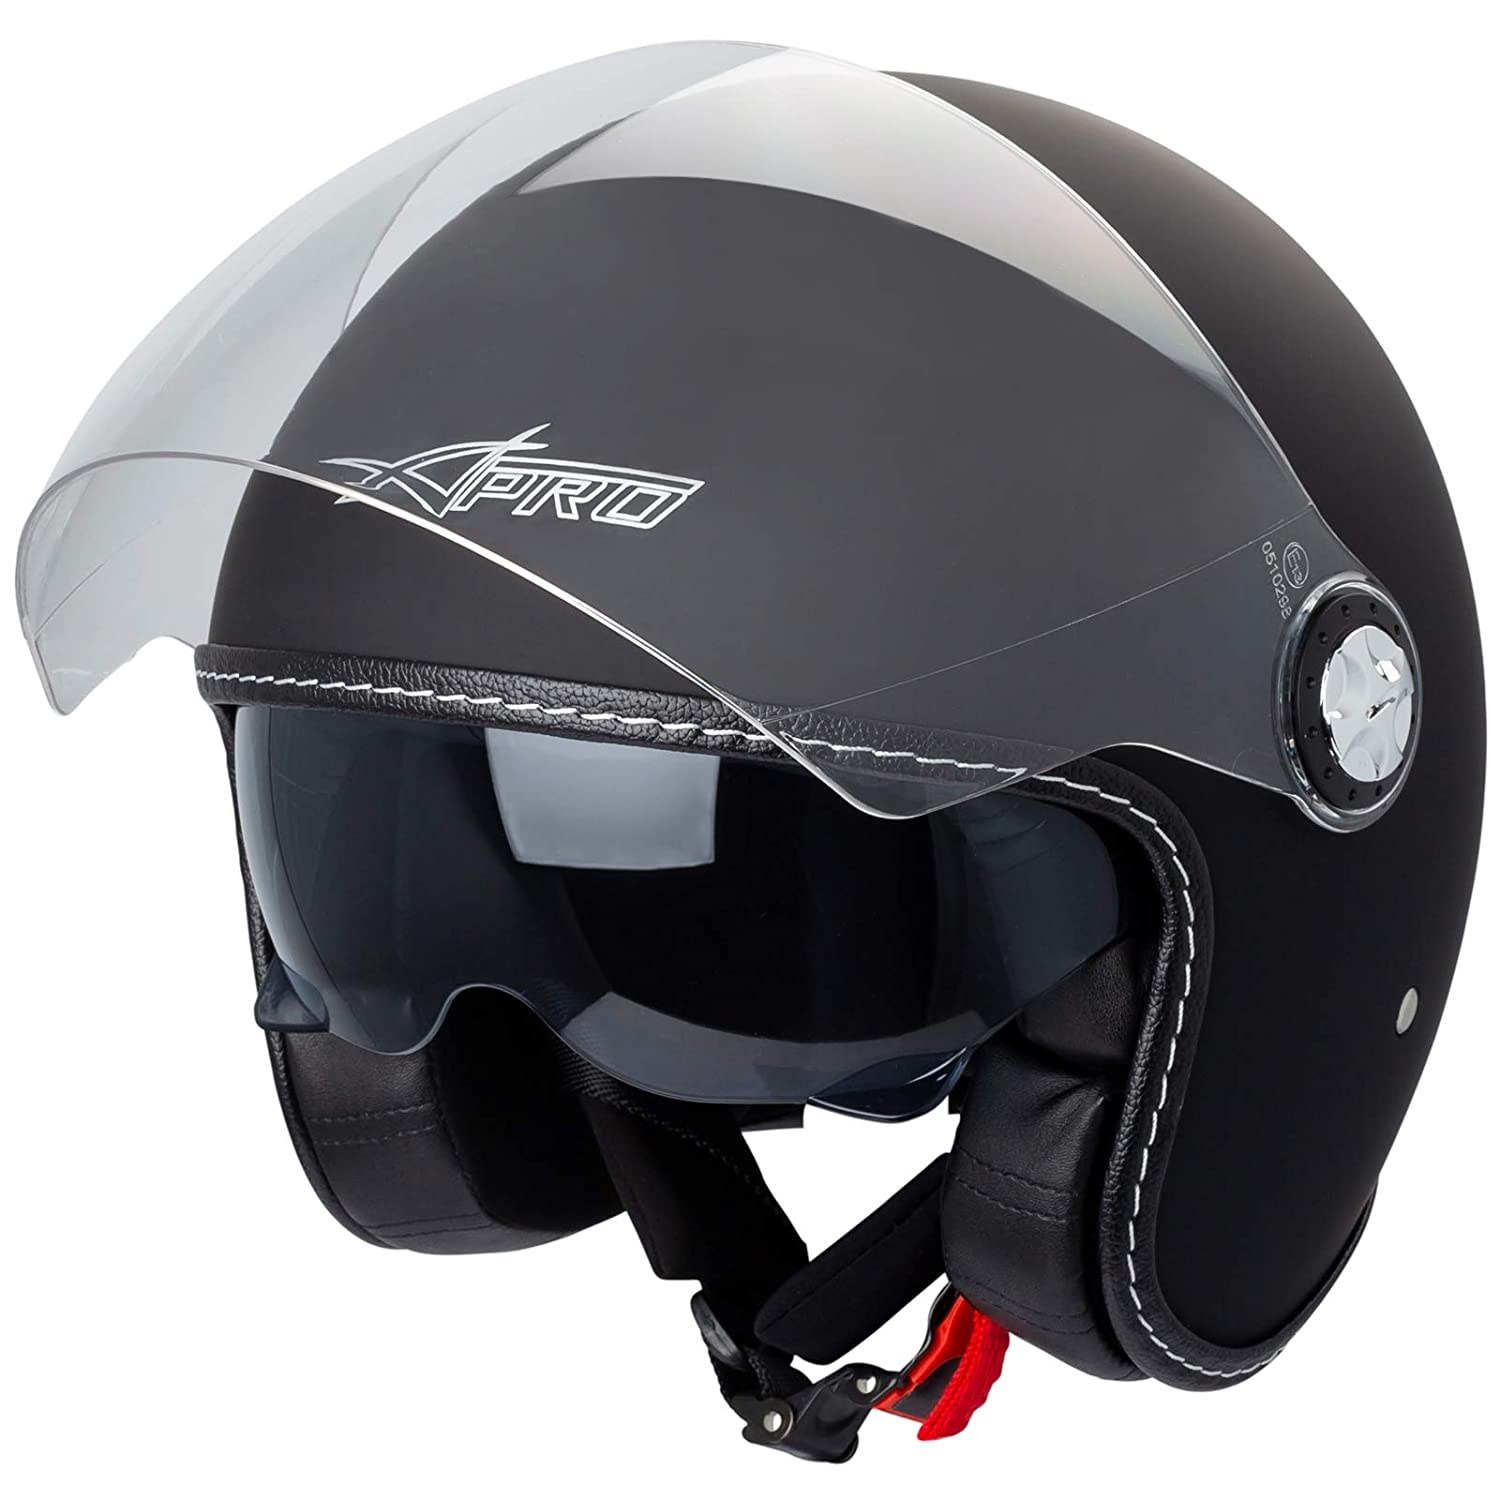 Jet Helmet City Retr/ò Open Face Motorcycle Double Visor Scooter Matt Black XL